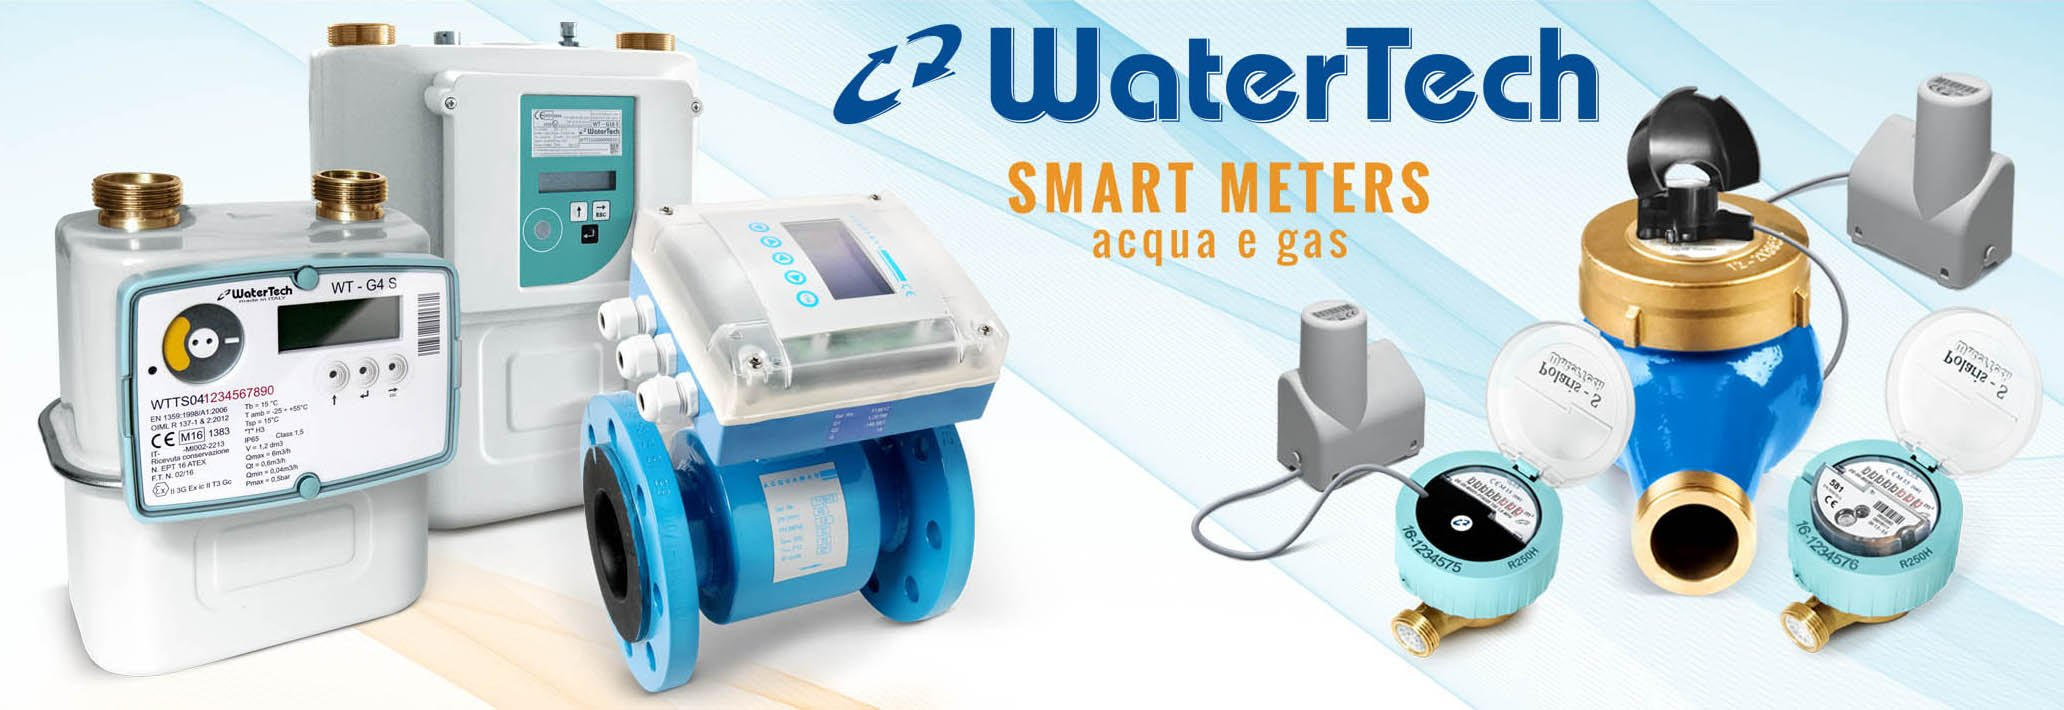 Watertech smart meter acqua e gas